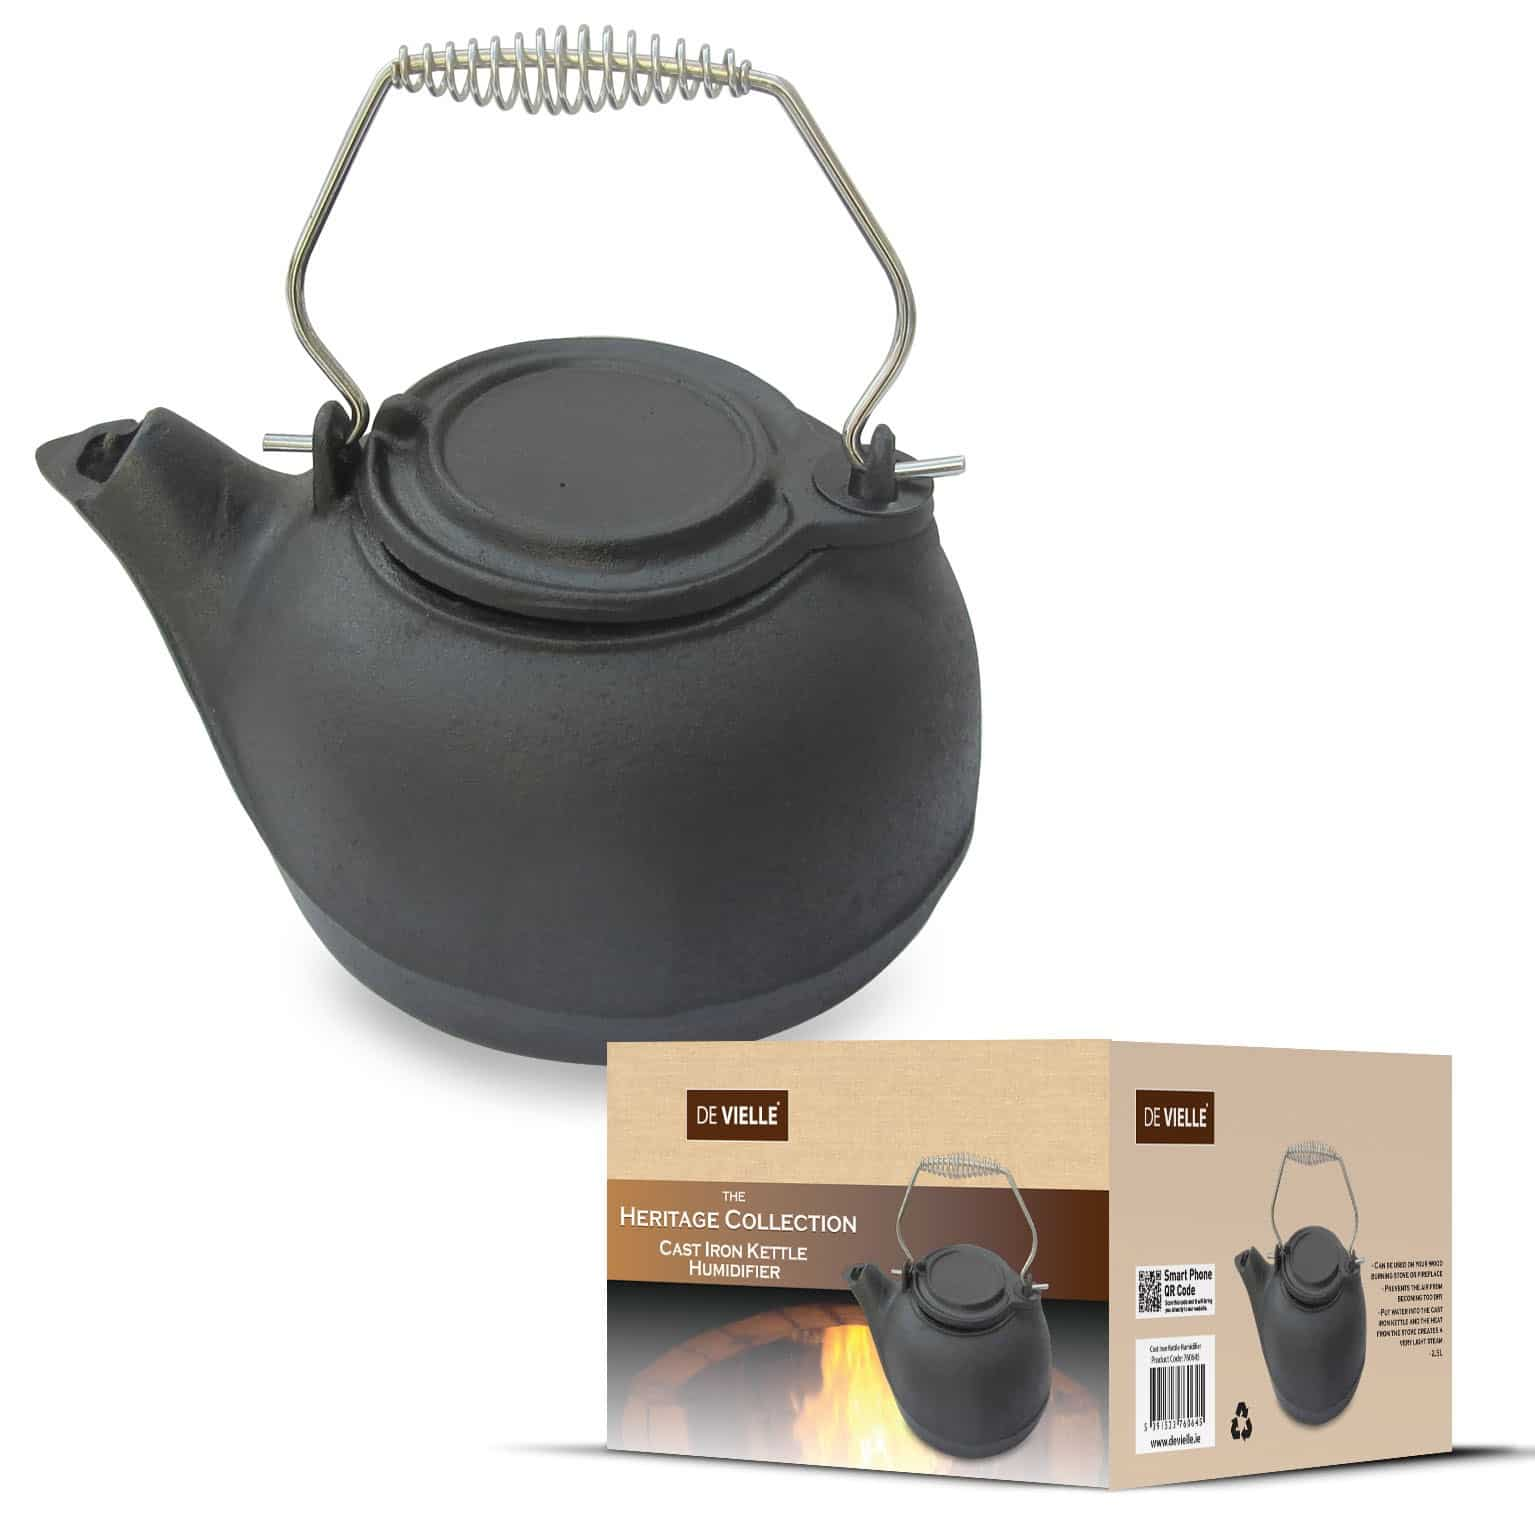 A cast iron kettle humidifier which can be used on your wood burning stove or fireplace to create a light steam and humidify the room naturally.